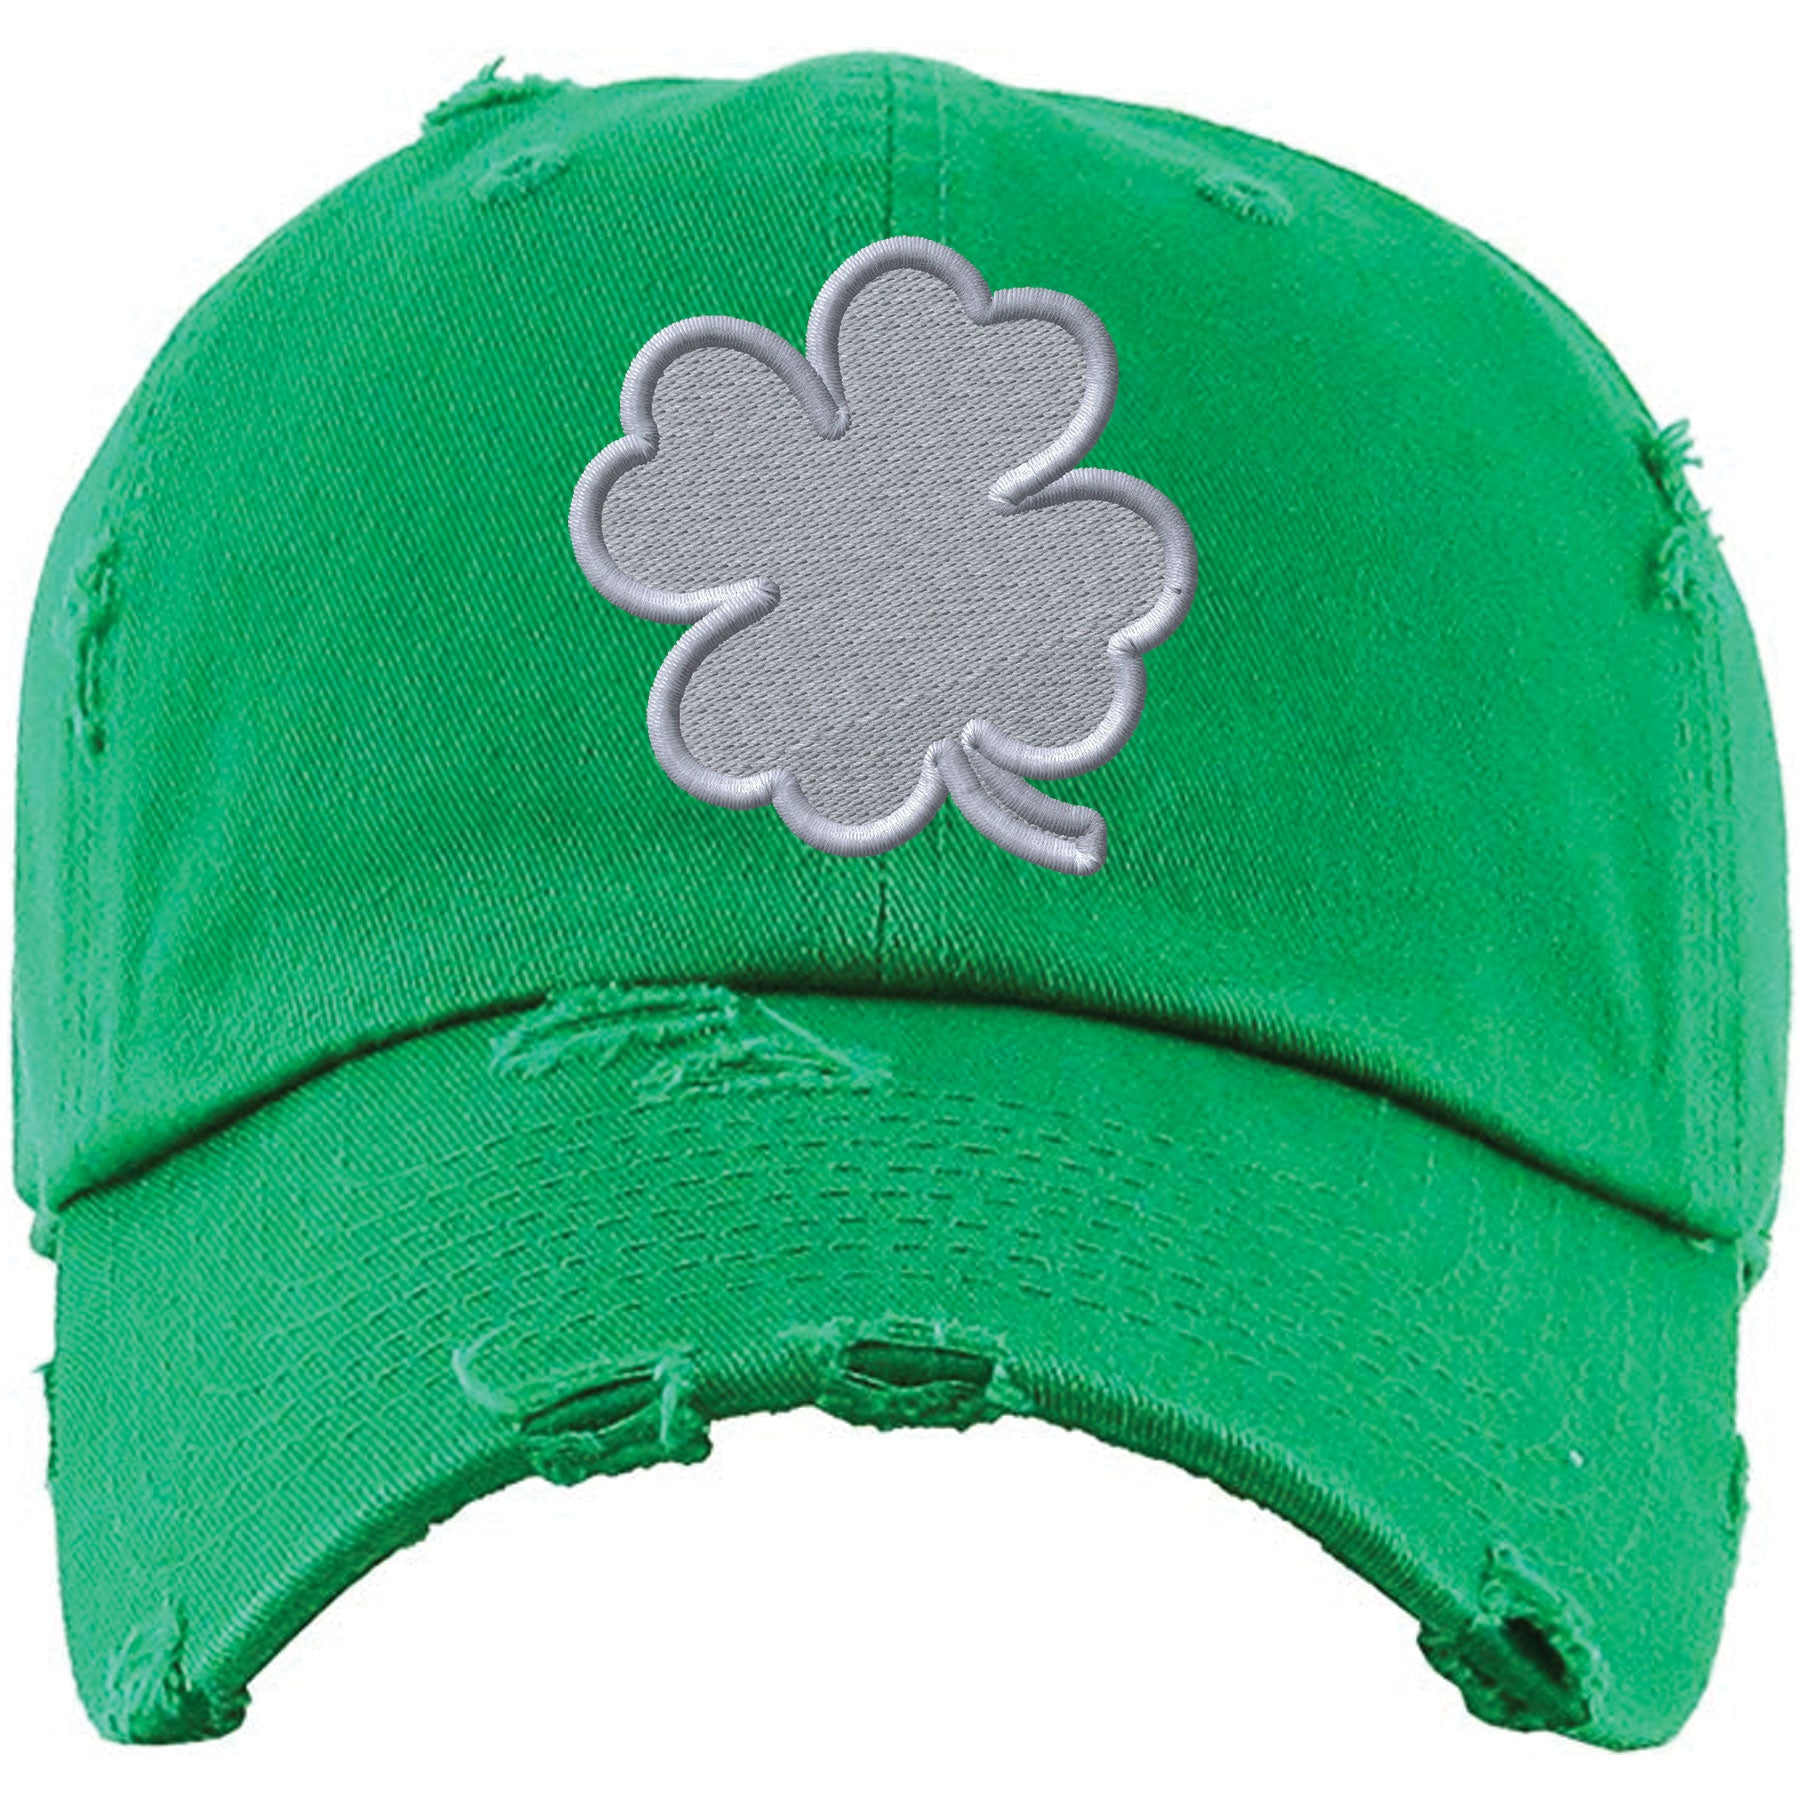 65a7abafd Look great with funny St. Patrick's Day clothing and St. Patrick's Day  accessories from